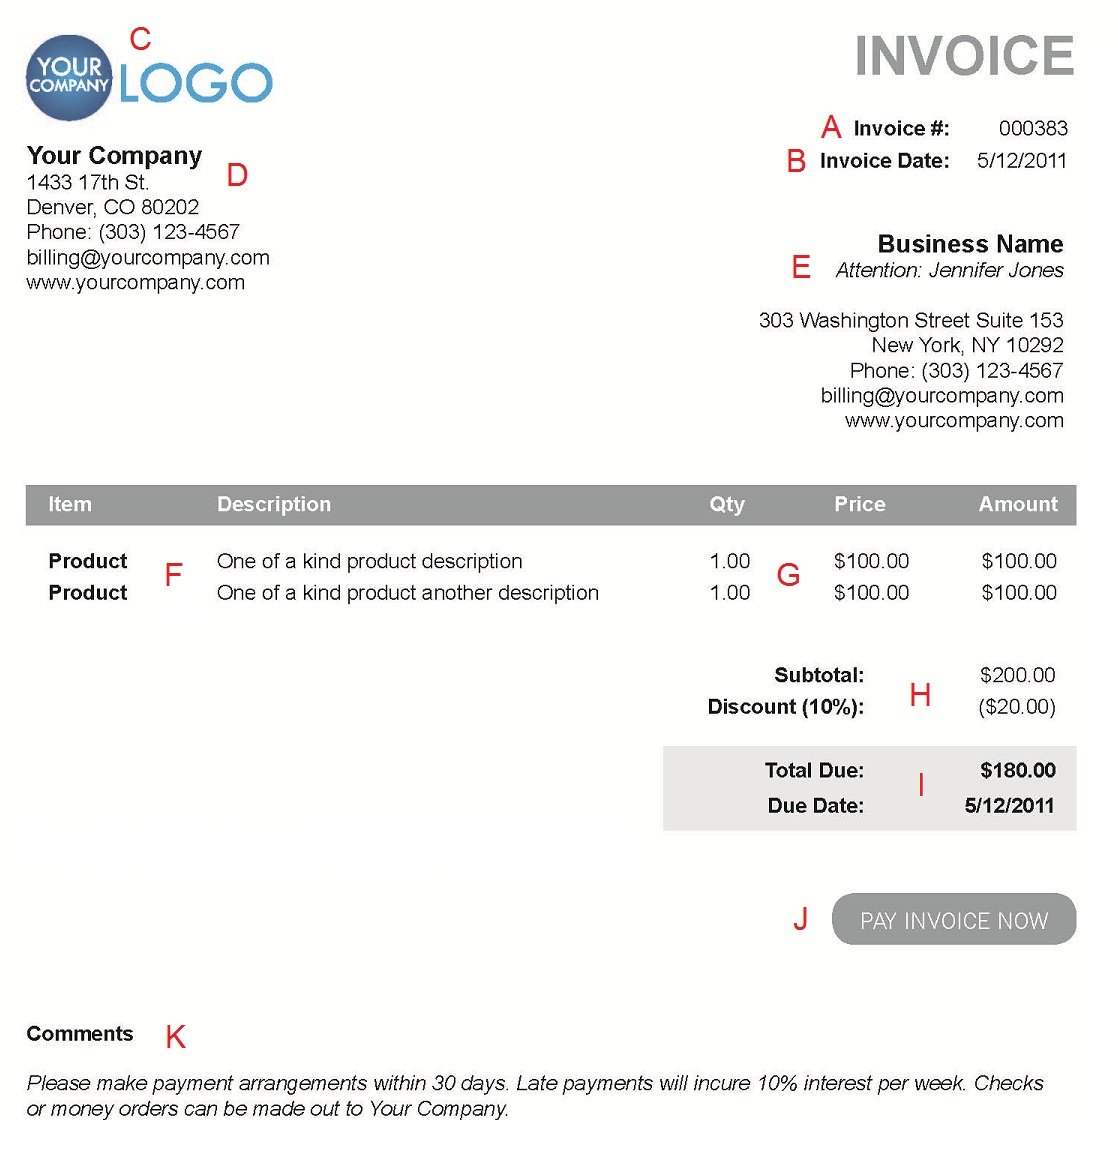 Opposenewapstandardsus  Inspiring The  Different Sections Of An Electronic Payment Invoice With Engaging A  With Breathtaking New Car Invoice Price By Vin Also Make Your Own Invoice Online In Addition Request An Invoice And Freelance Invoicing Software As Well As Contoh Proforma Invoice Additionally Project Invoicing From Paysimplecom With Opposenewapstandardsus  Engaging The  Different Sections Of An Electronic Payment Invoice With Breathtaking A  And Inspiring New Car Invoice Price By Vin Also Make Your Own Invoice Online In Addition Request An Invoice From Paysimplecom